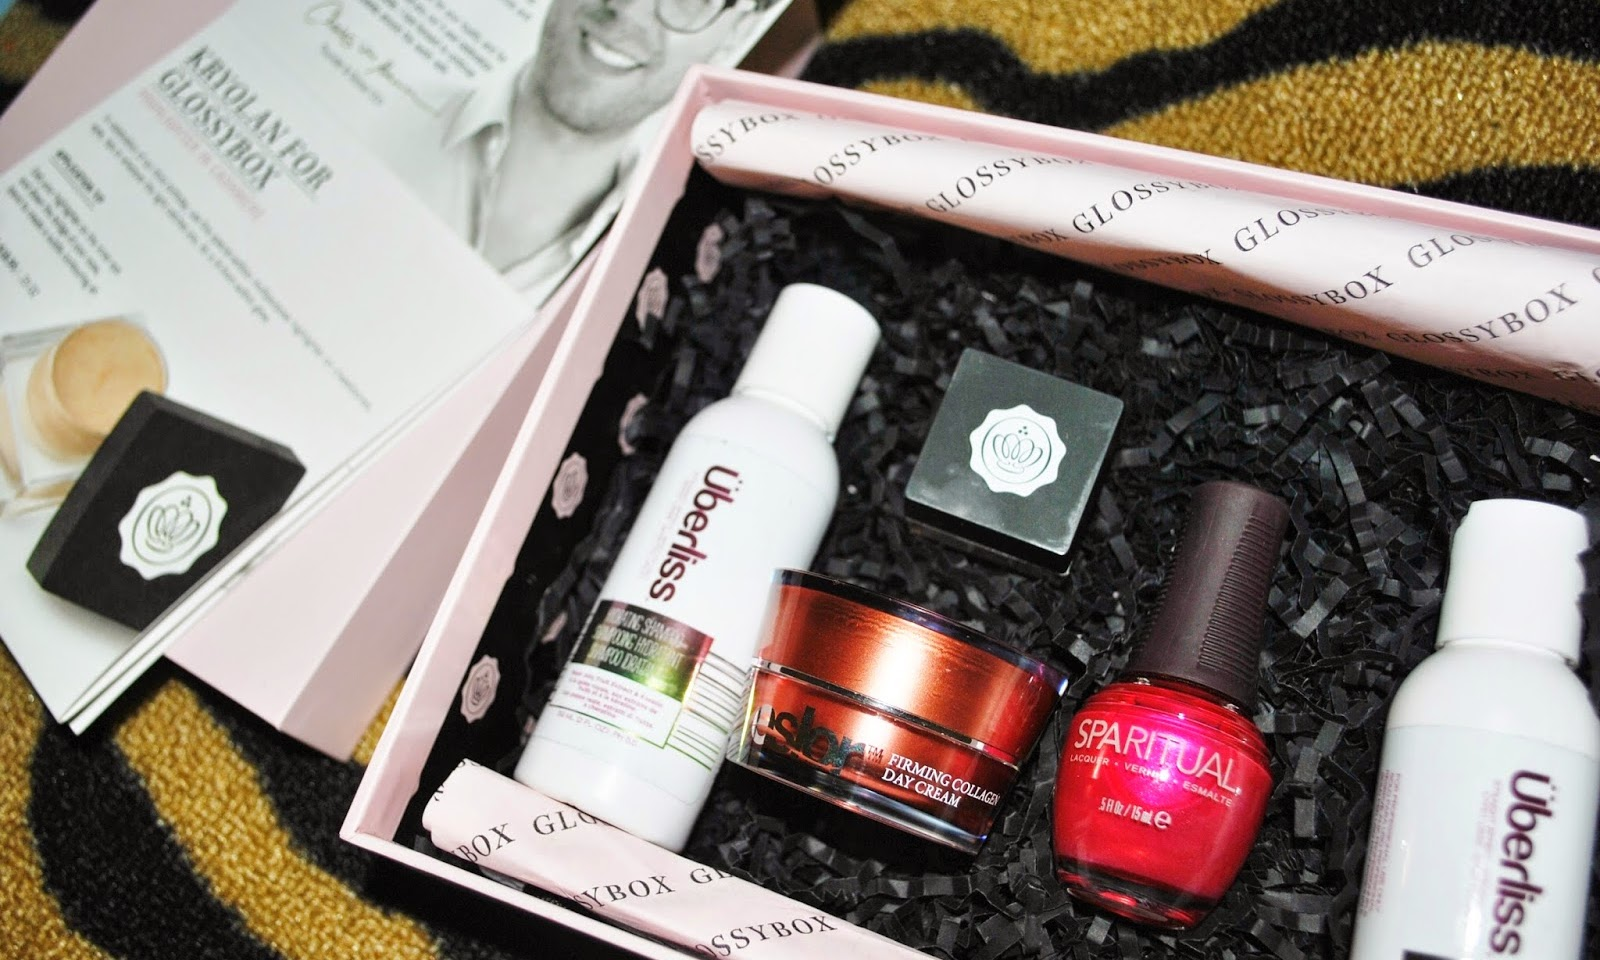 August | Glossybox Review